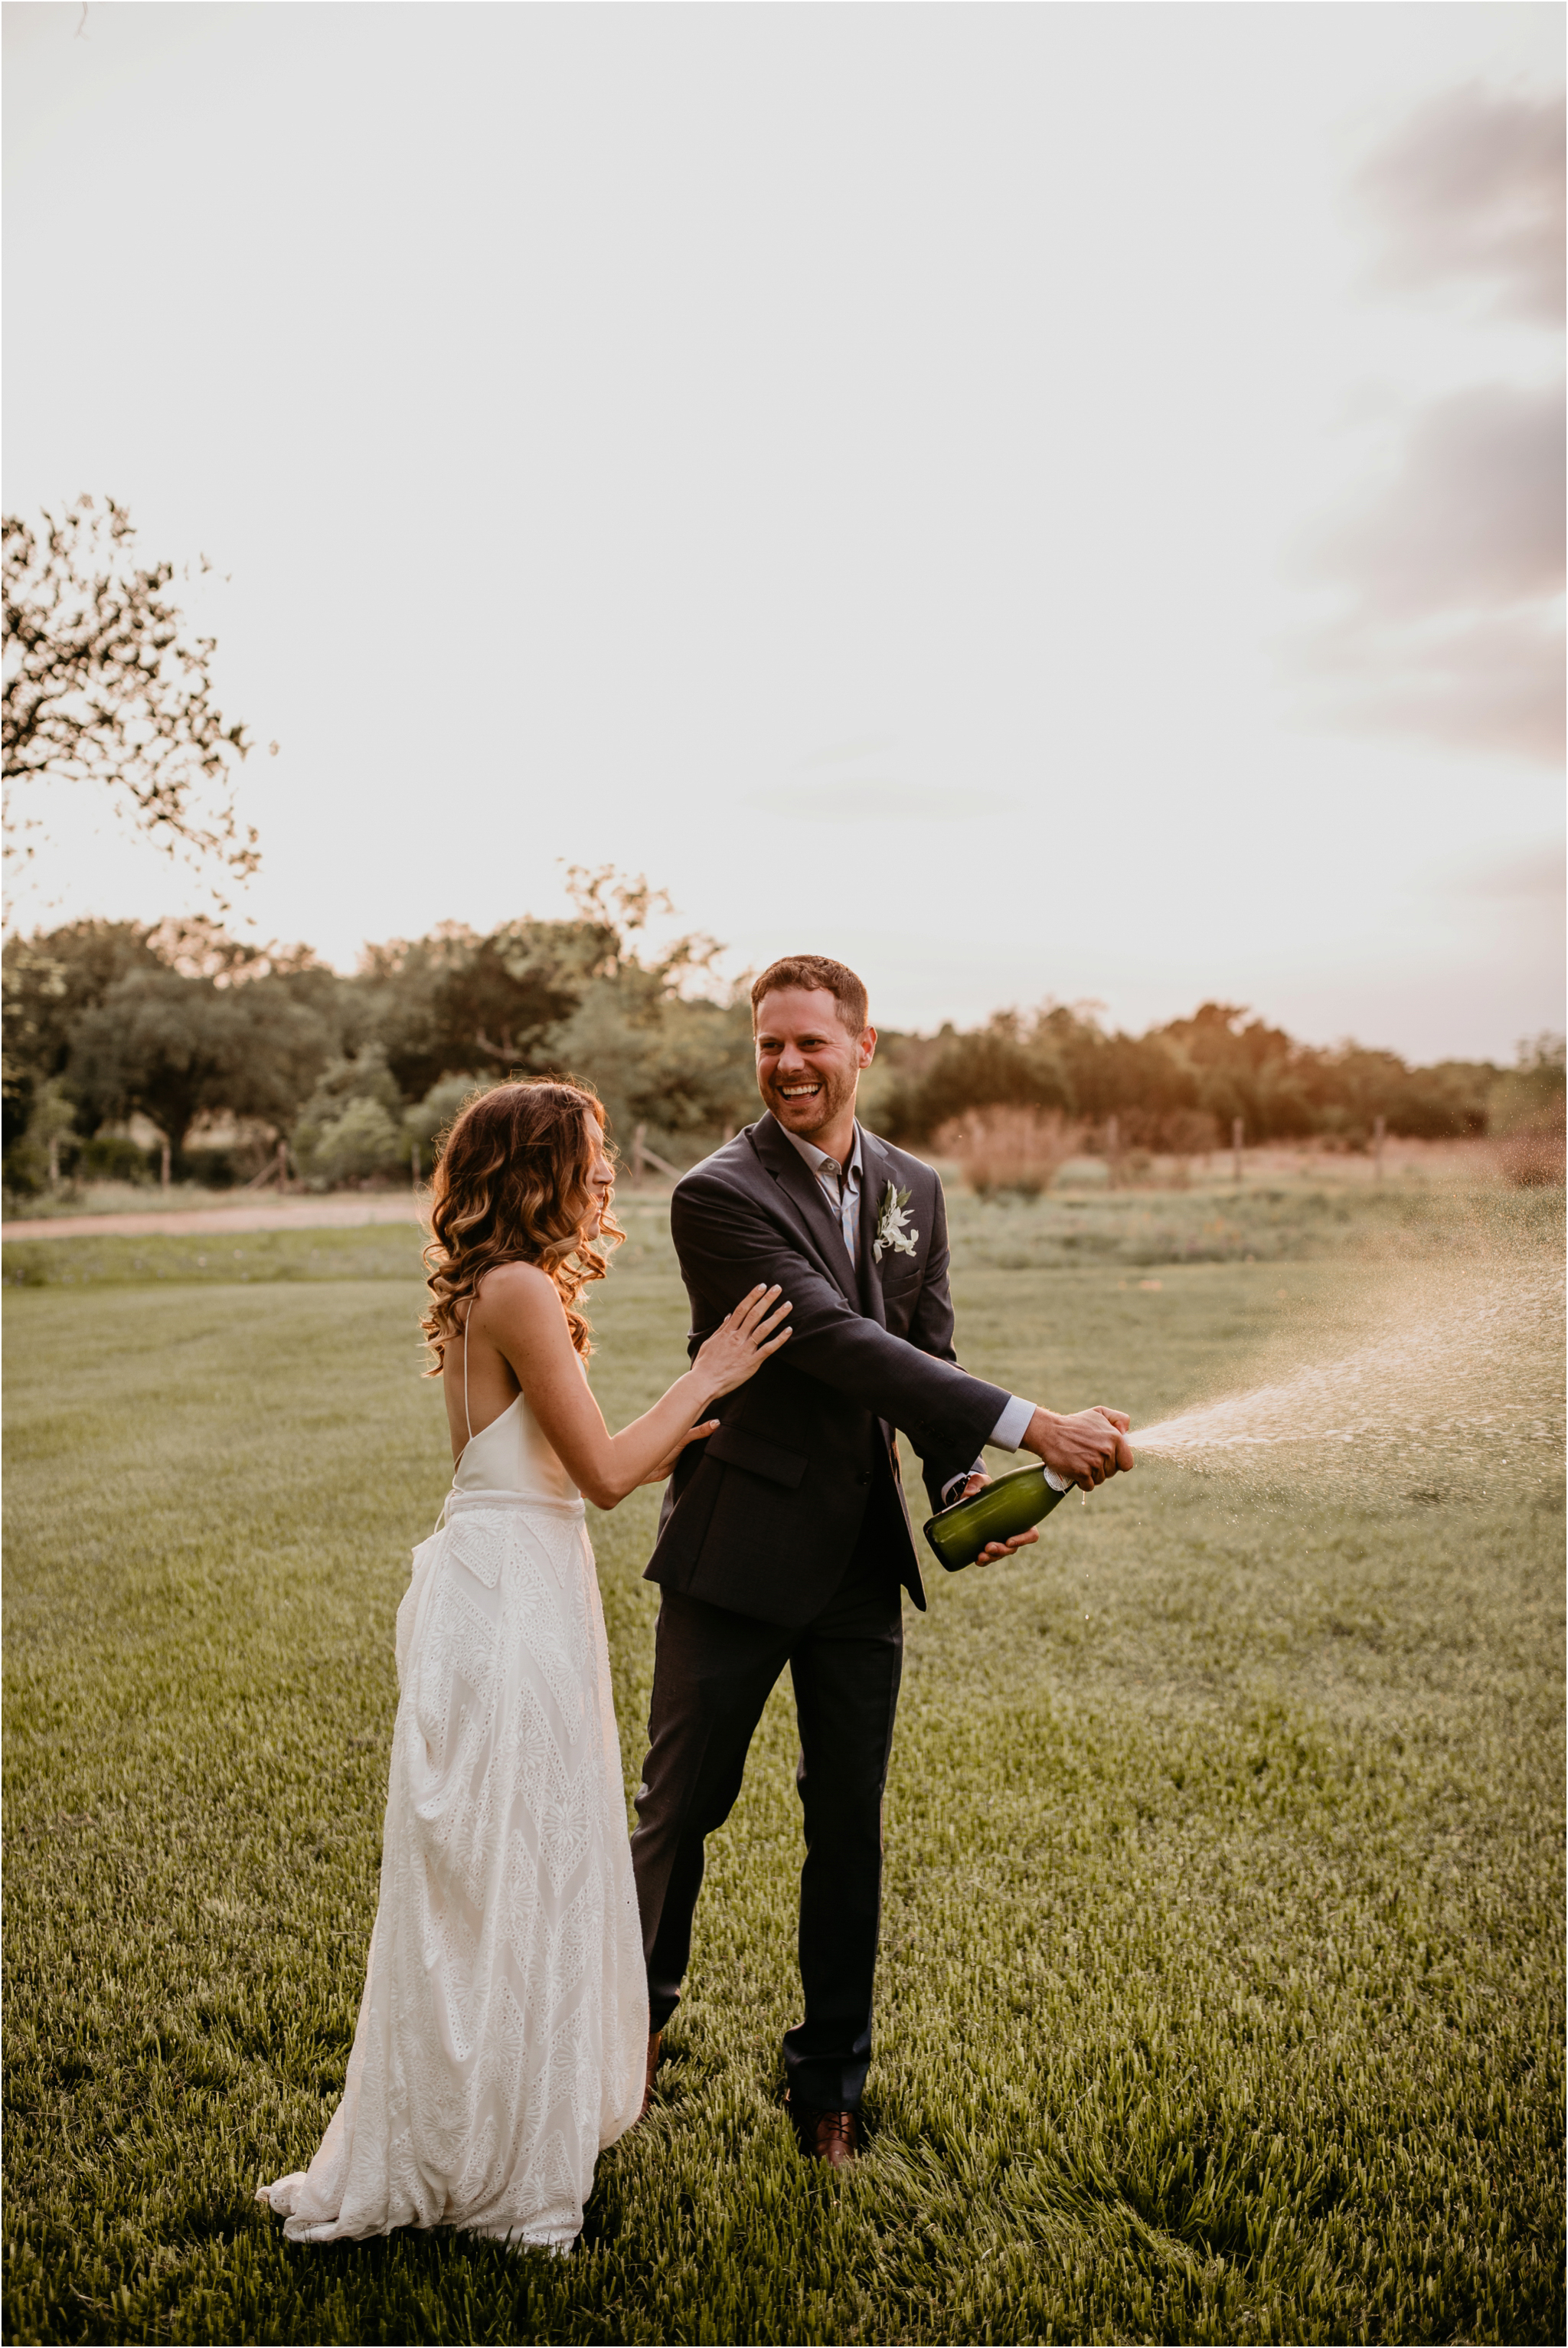 jillian-and-scott-pecan-springs-ranch-texas-and-washington-wedding-photographer-102.jpg